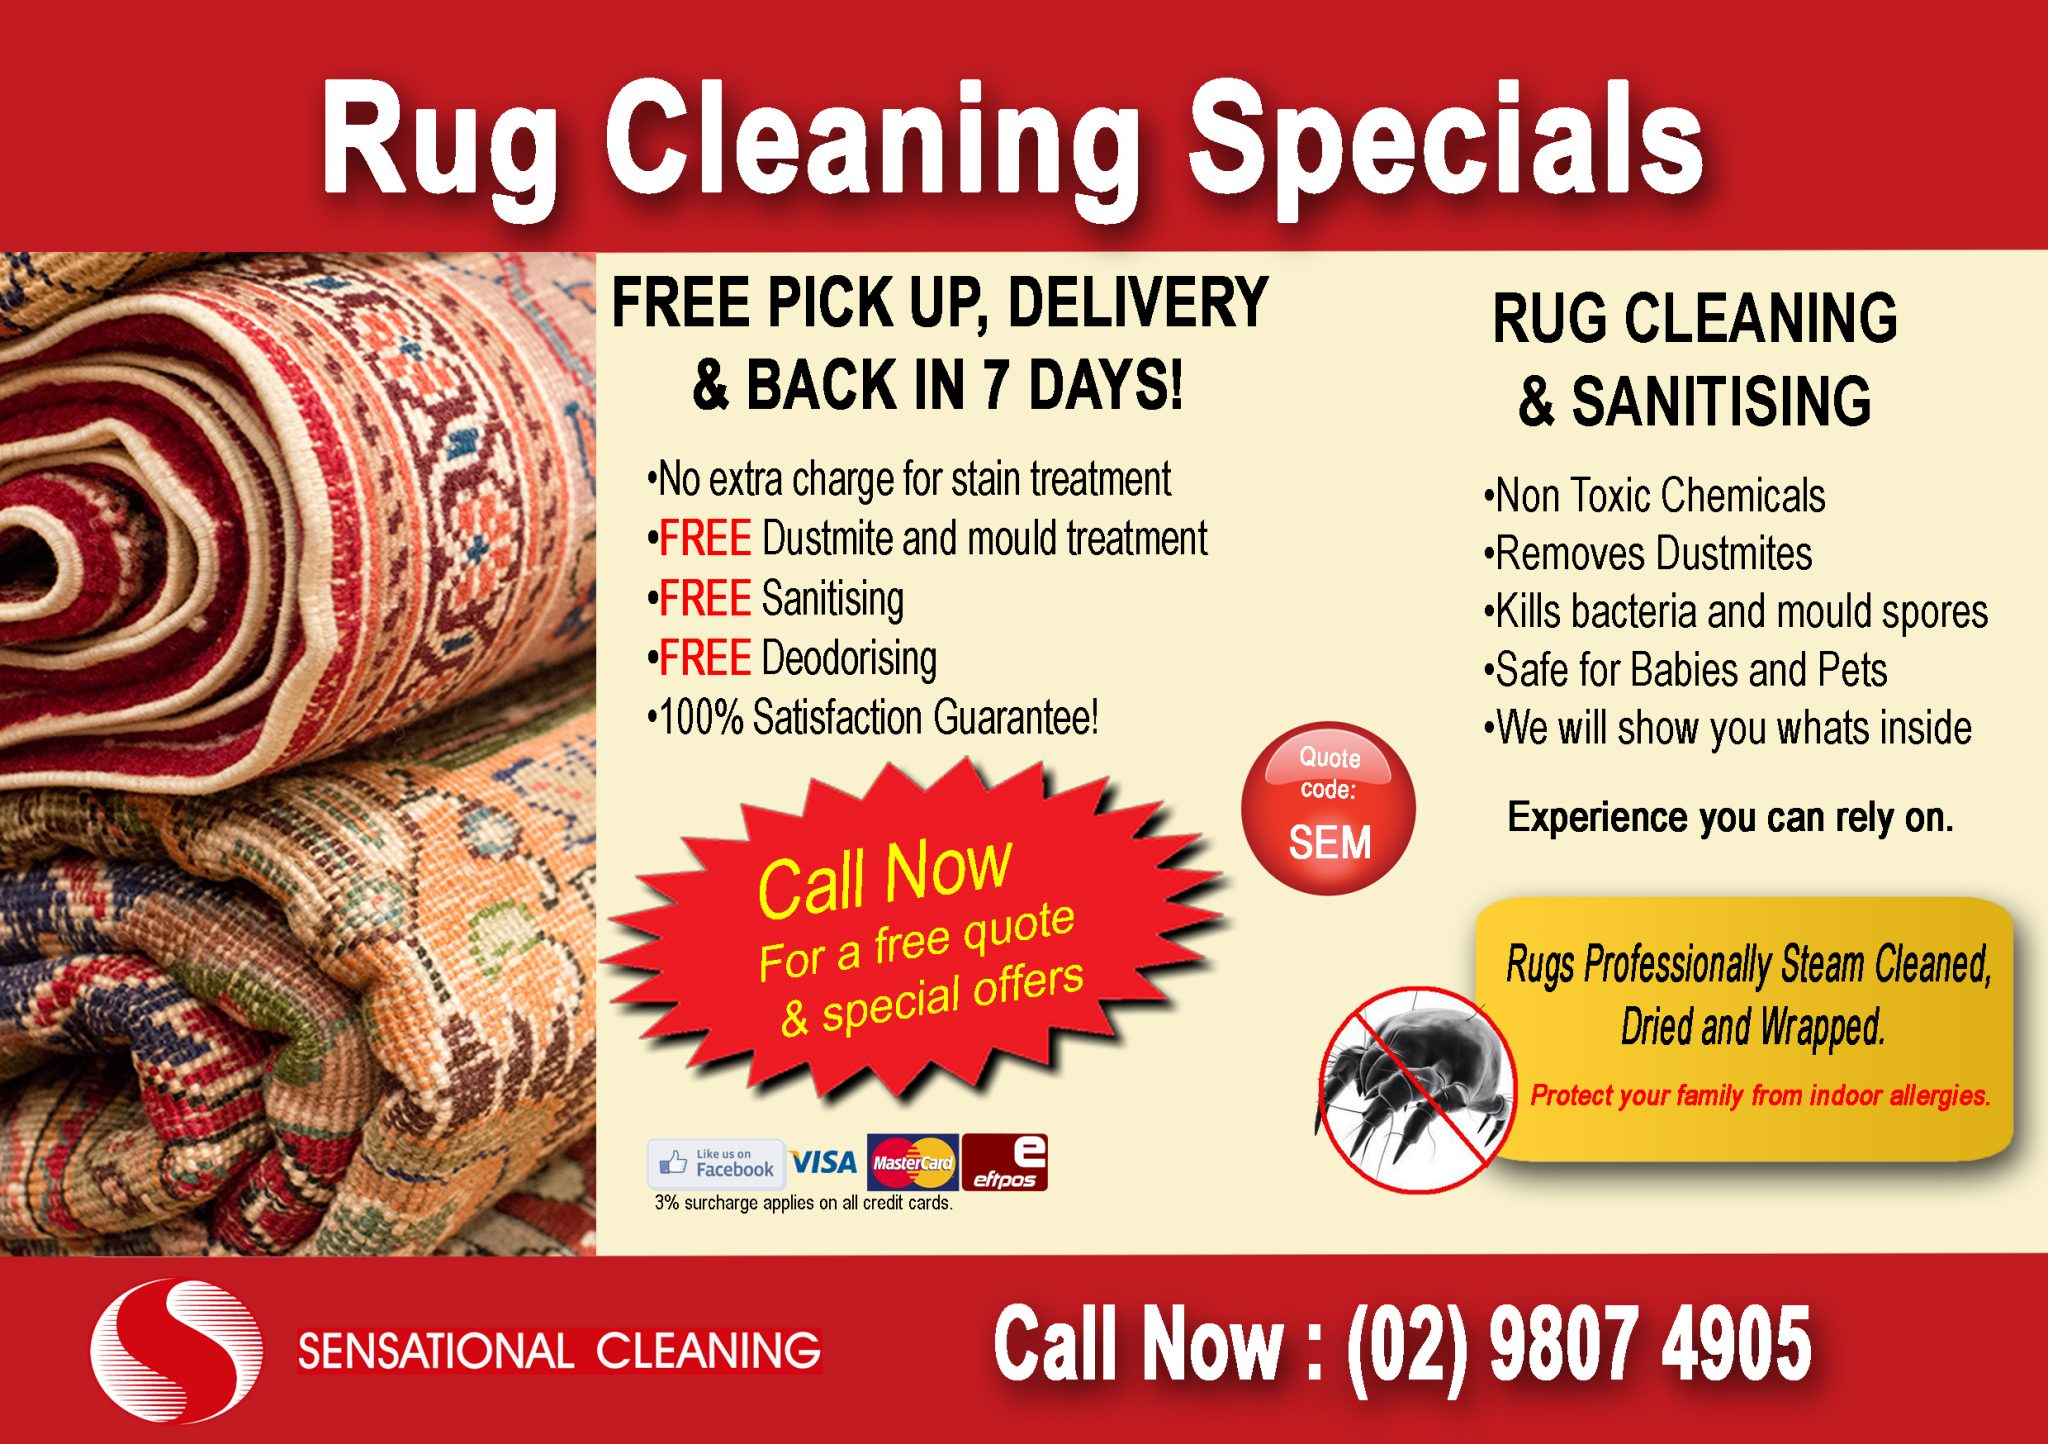 Rug Cleaning Sydney, Rug cleaning services Sydney, Mobile rug cleaners